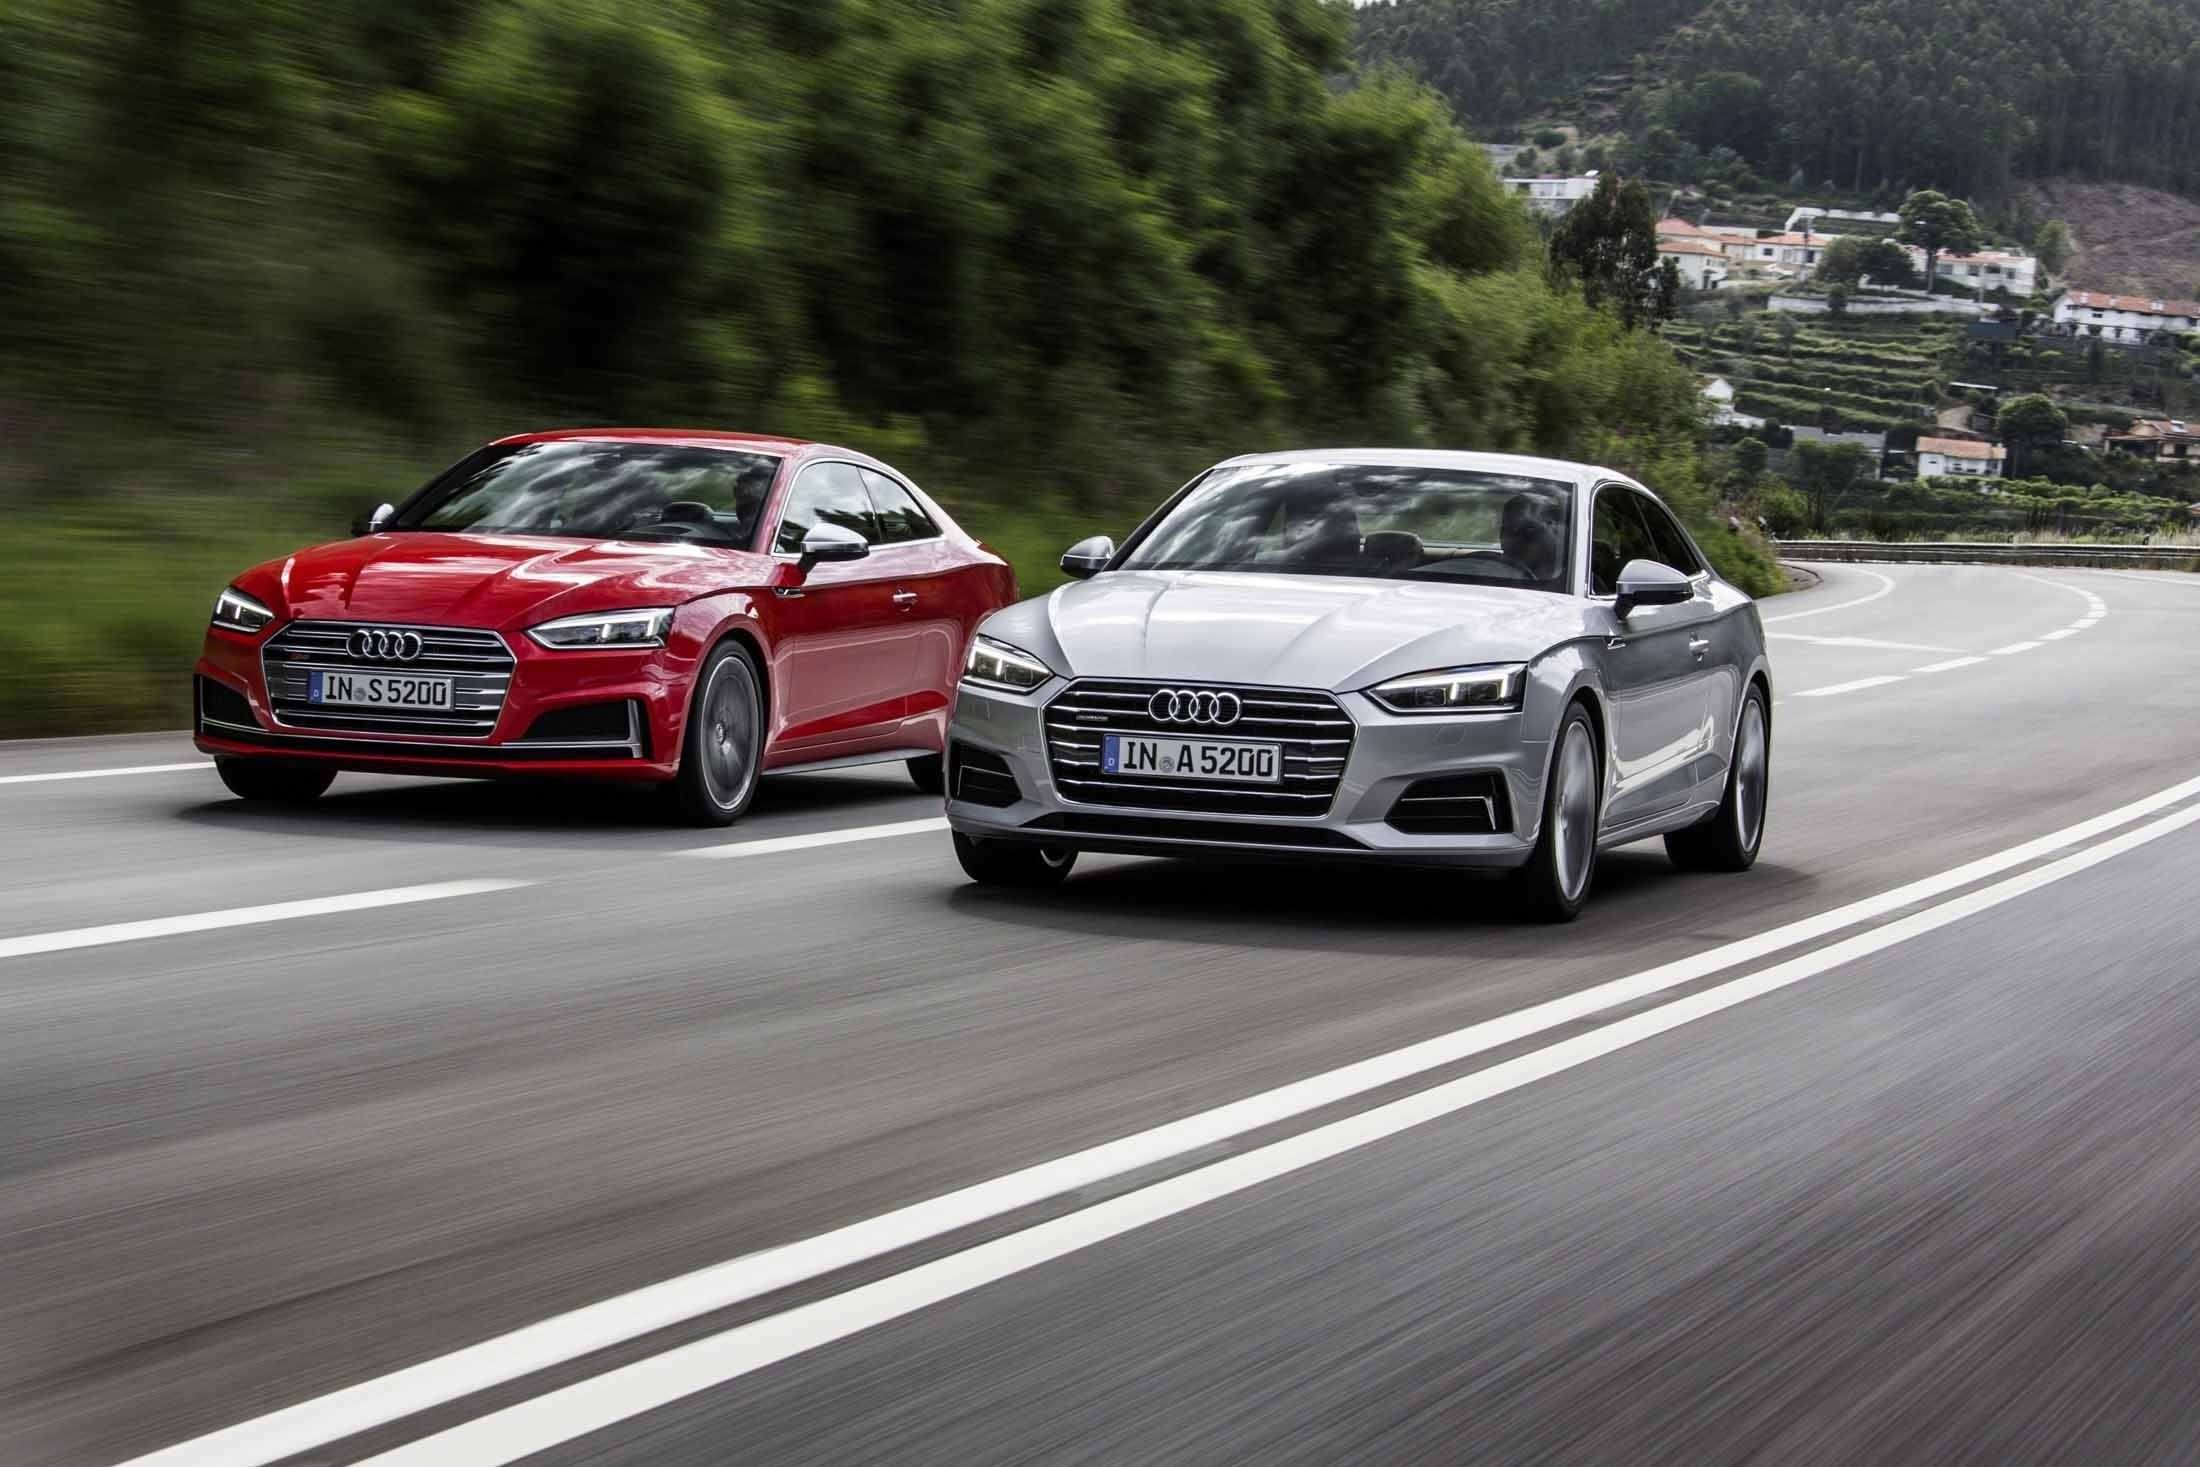 93 All New 2020 Audi Rs5 Tdi Rumors